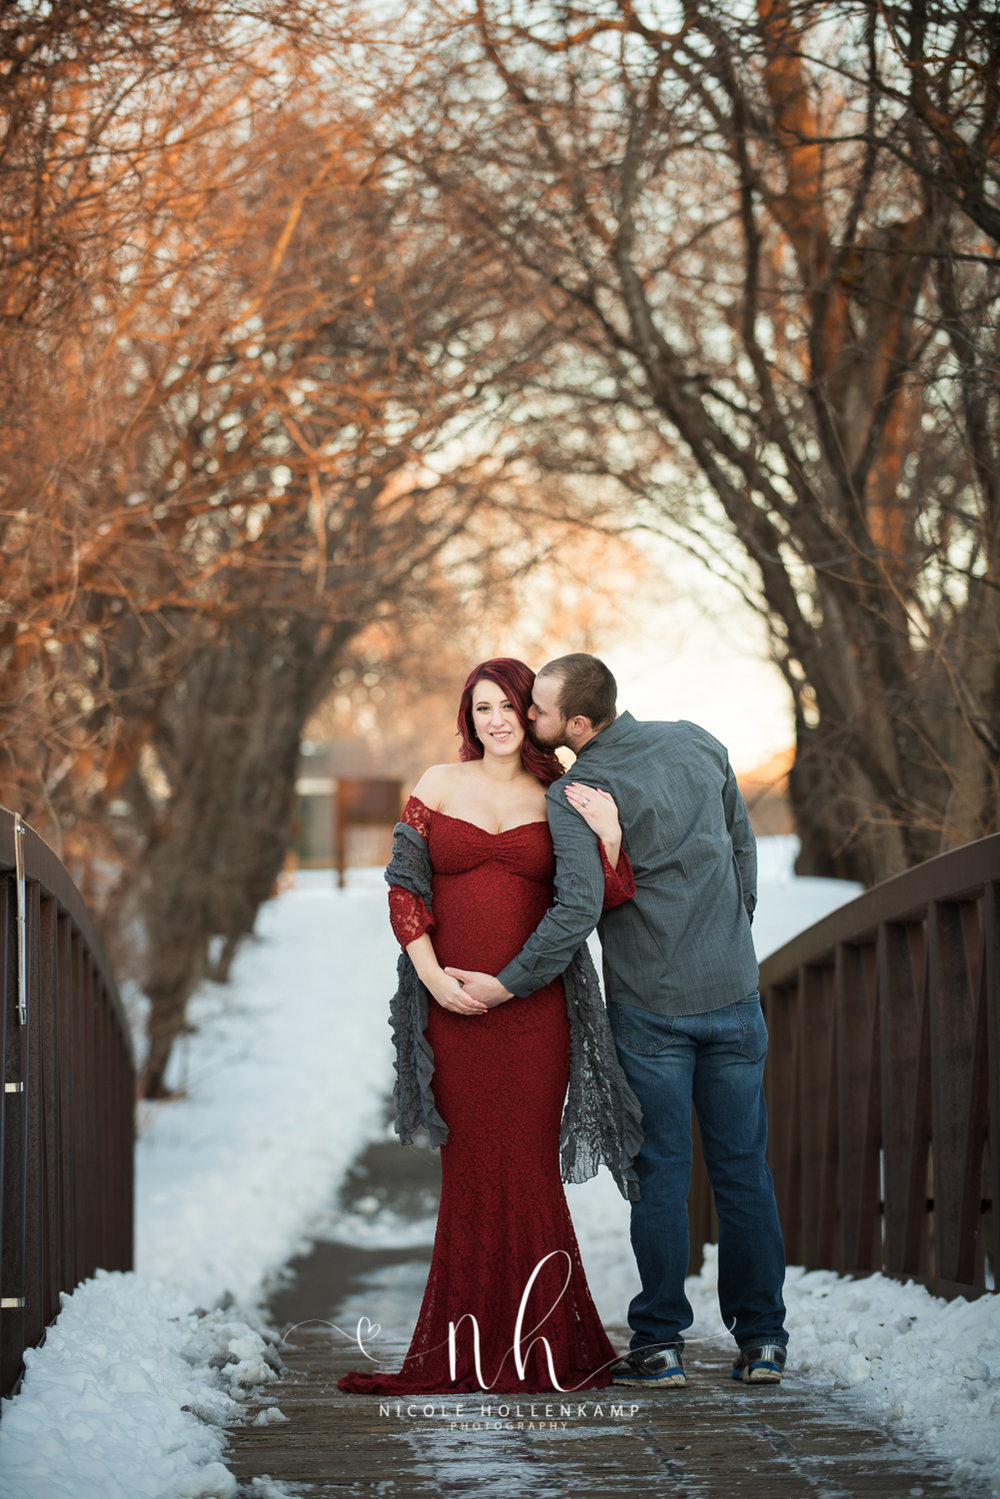 Digital Maternity Session  - just $395.00 + tax